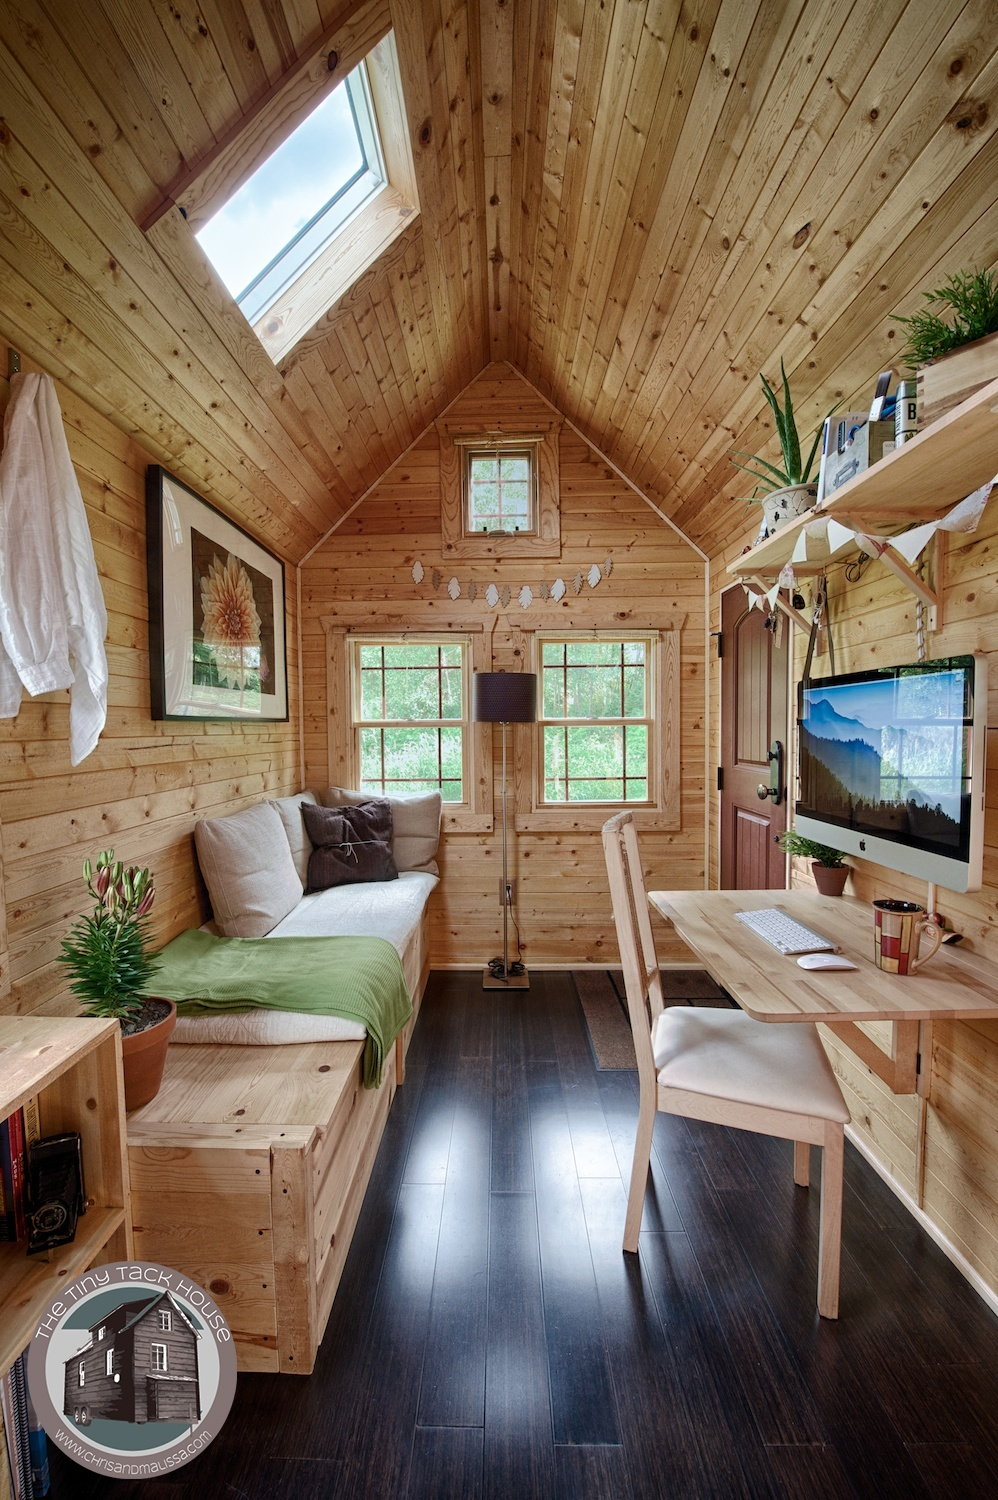 16 Tiny Houses You Wish Could Live In